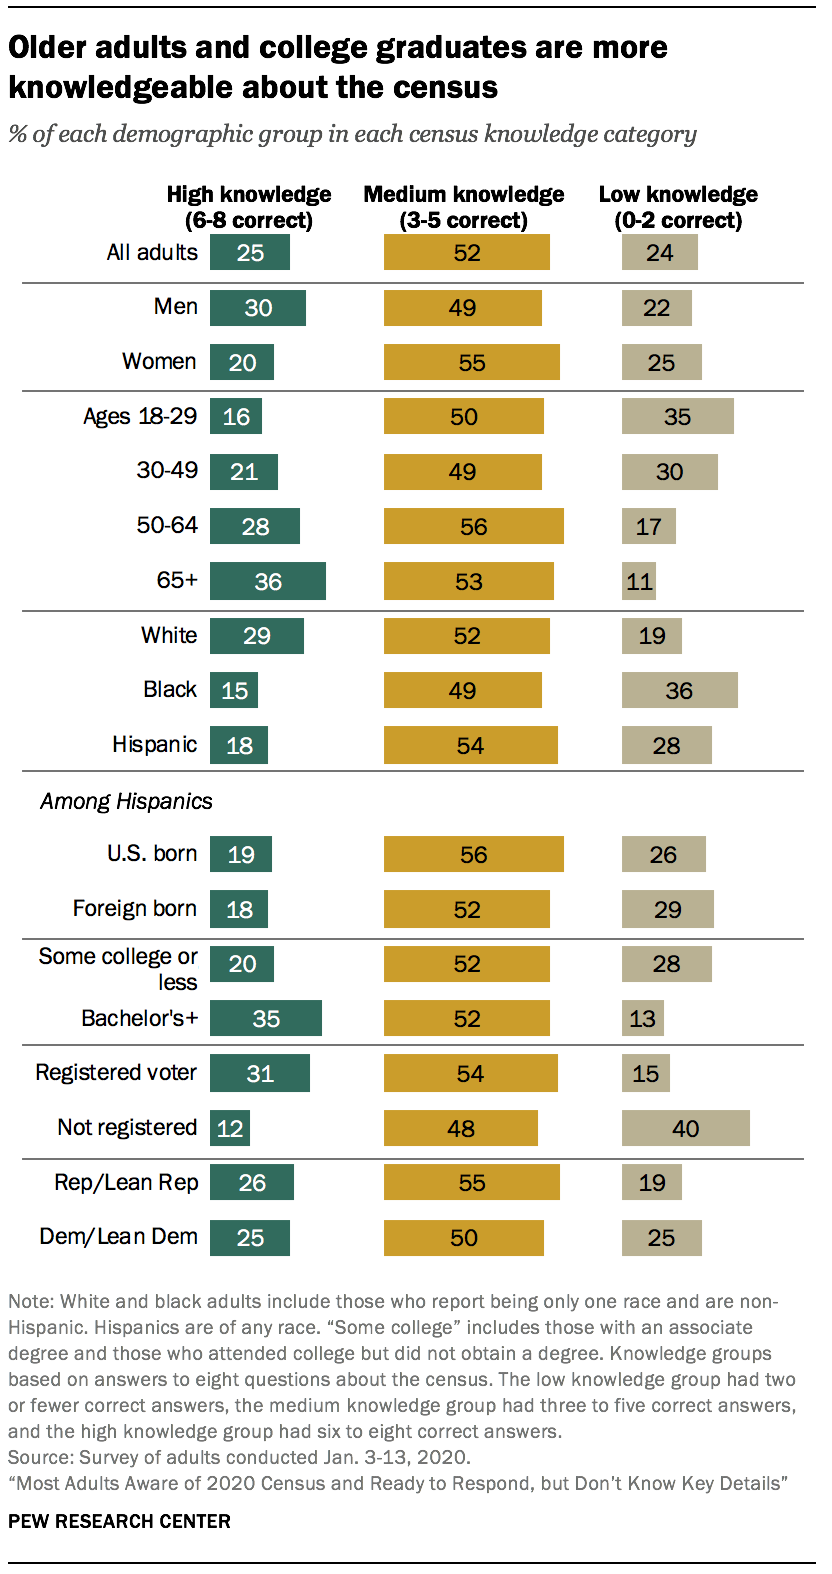 Older adults and college graduates are more knowledgeable about the census